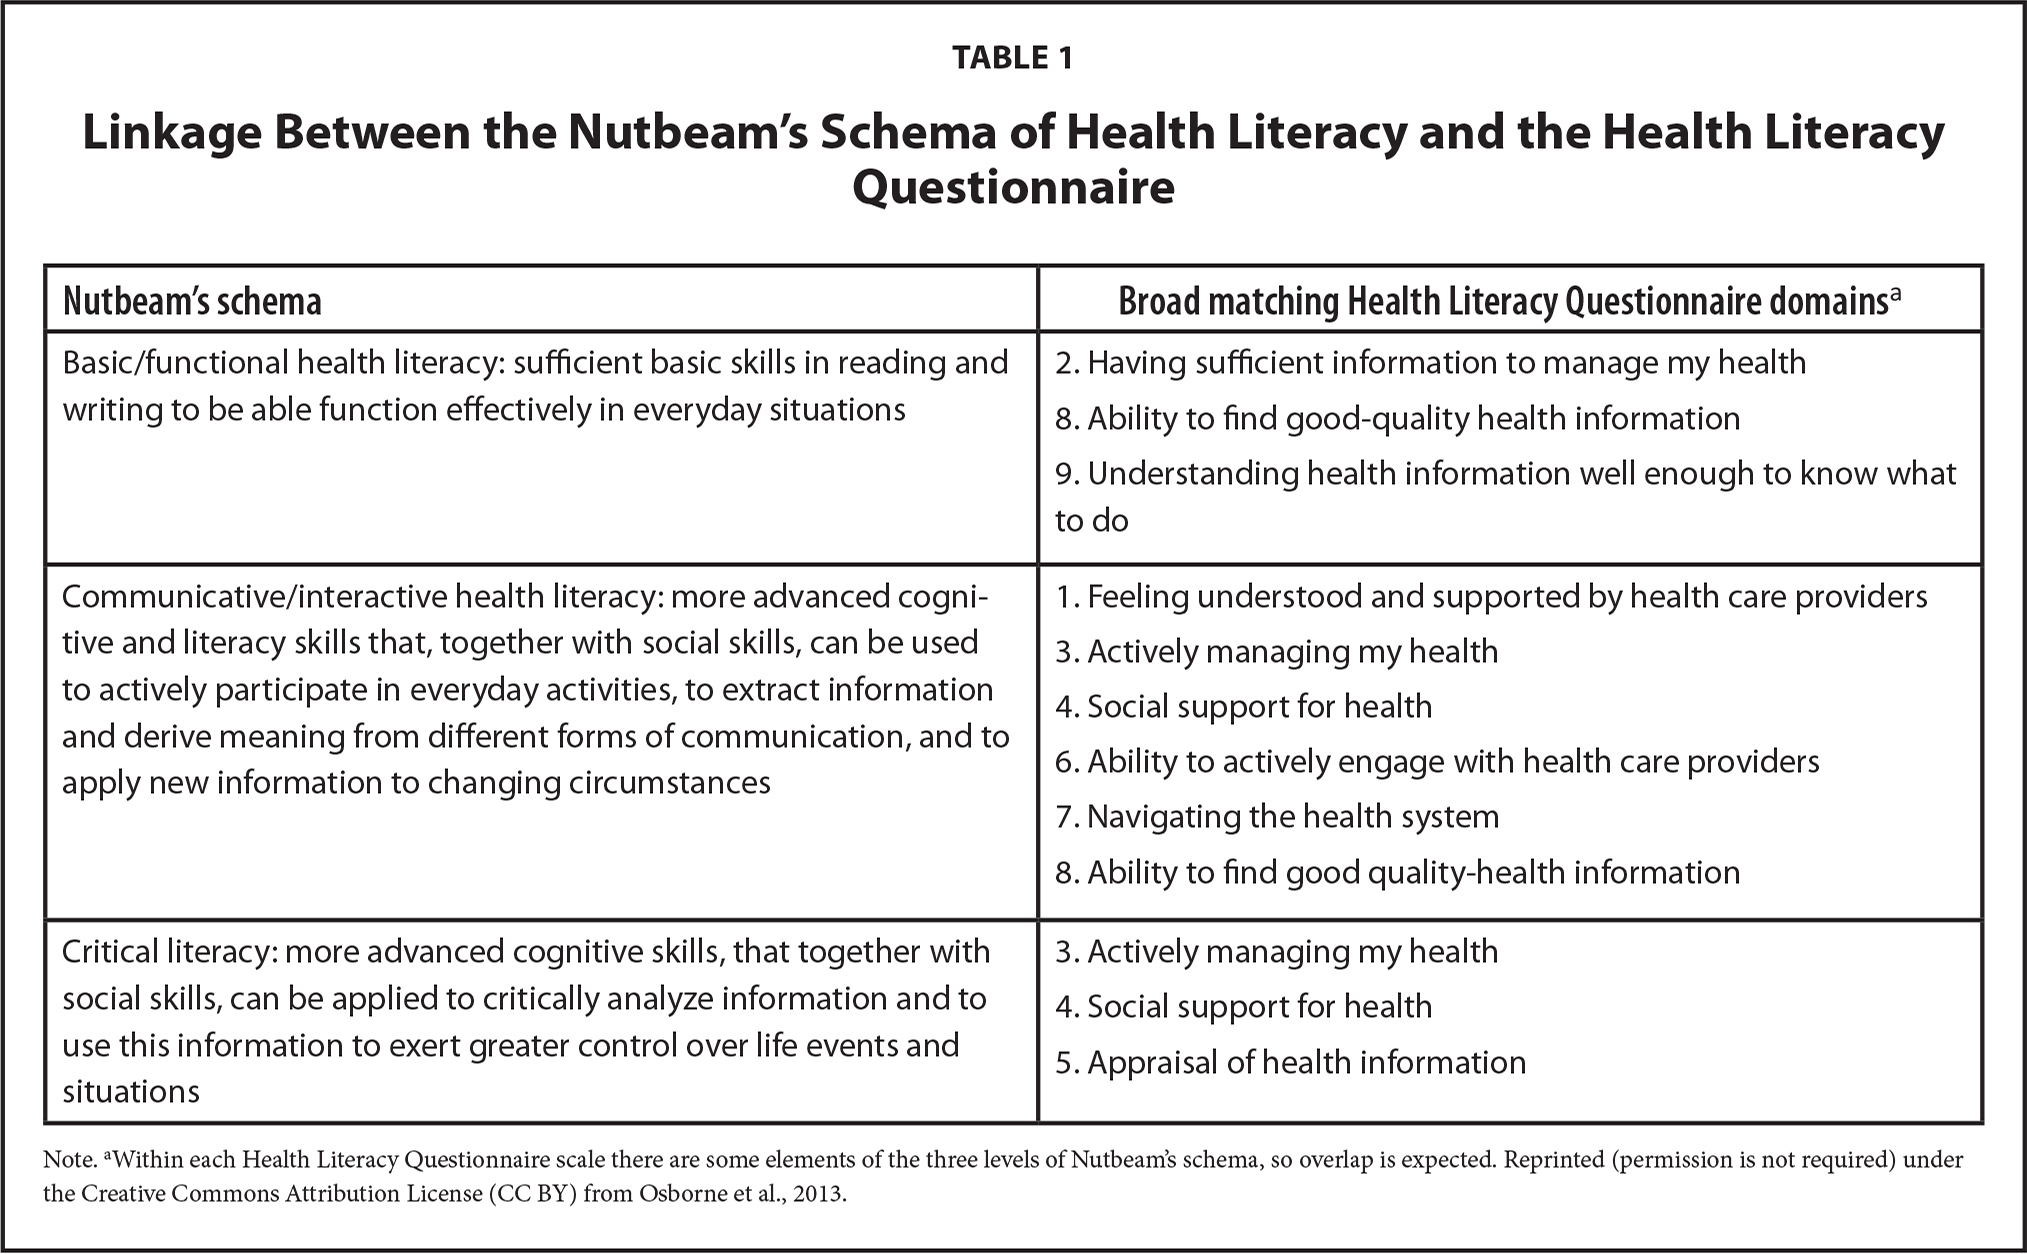 Linkage Between the Nutbeam's Schema of Health Literacy and the Health Literacy Questionnaire